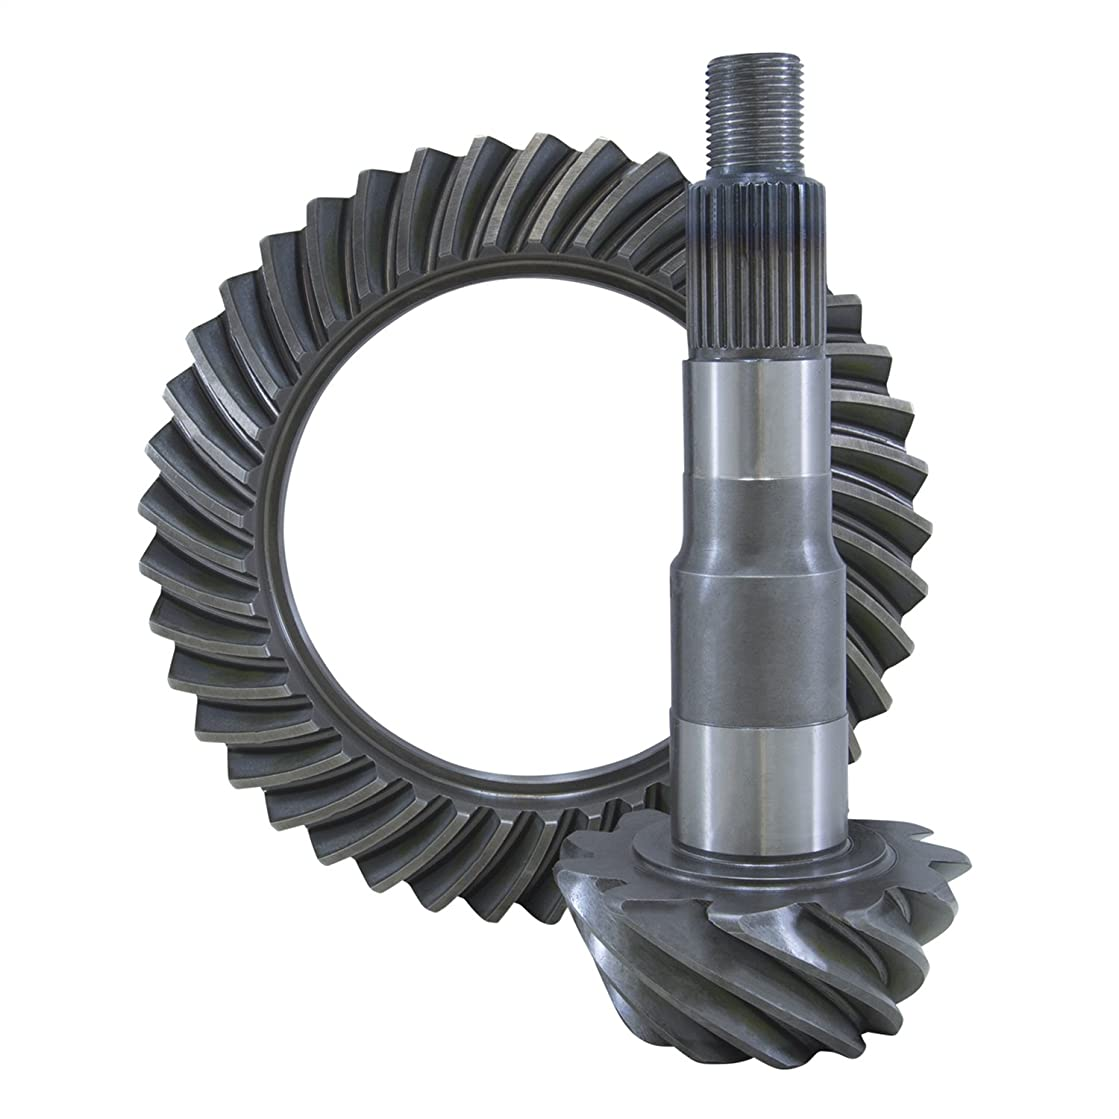 Yukon Gear & Axle (YG D44HD-456) High Performance Ring & Pinion Gear Set for Dana 44-HD Differential